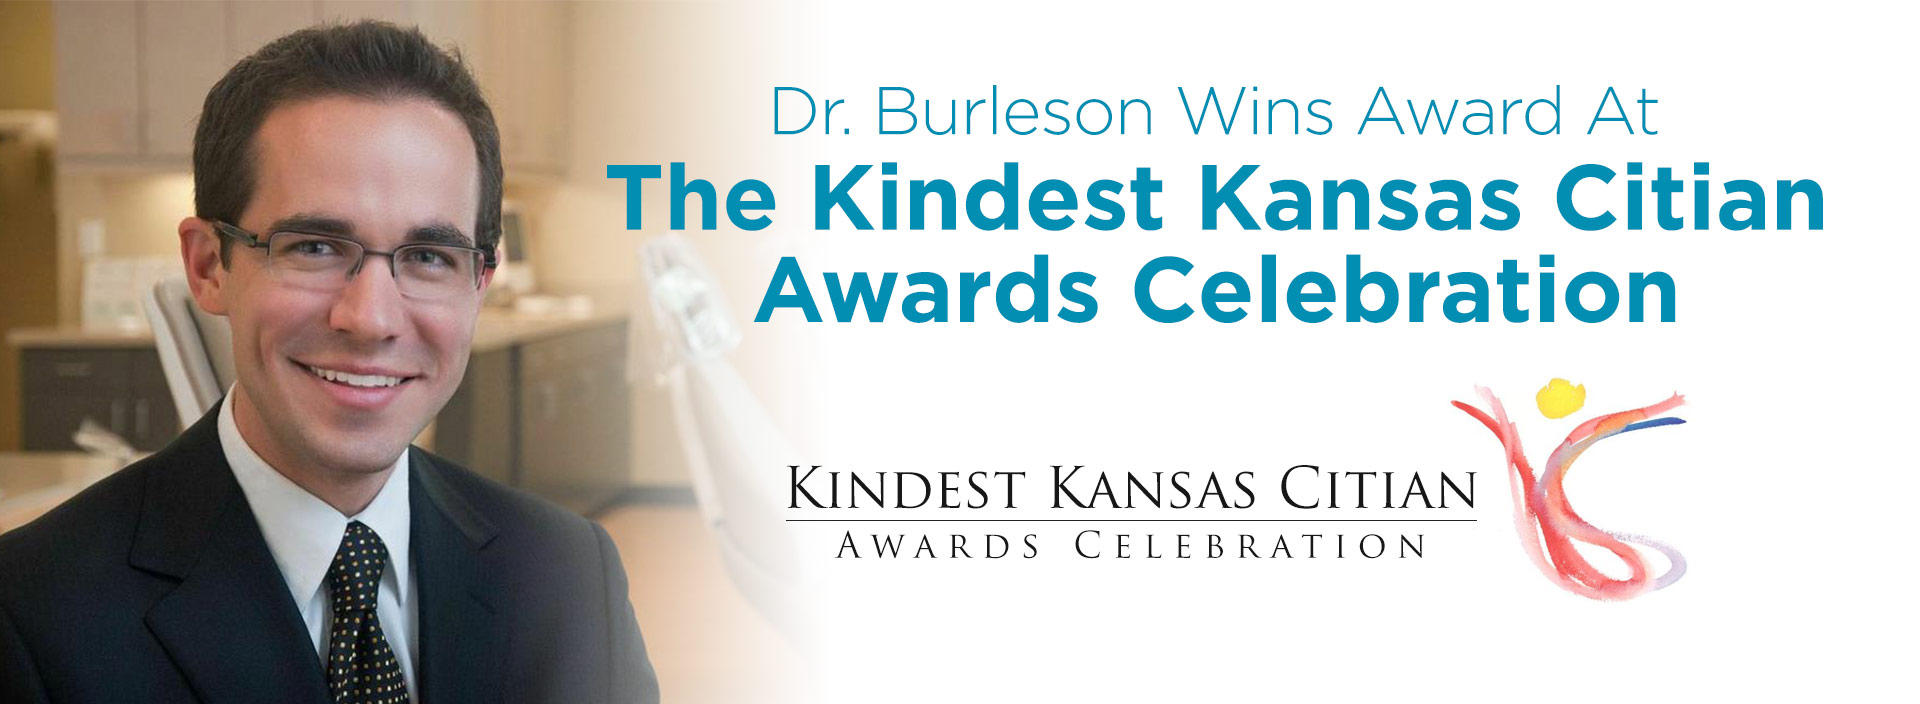 kindest kansas citian awards celebration